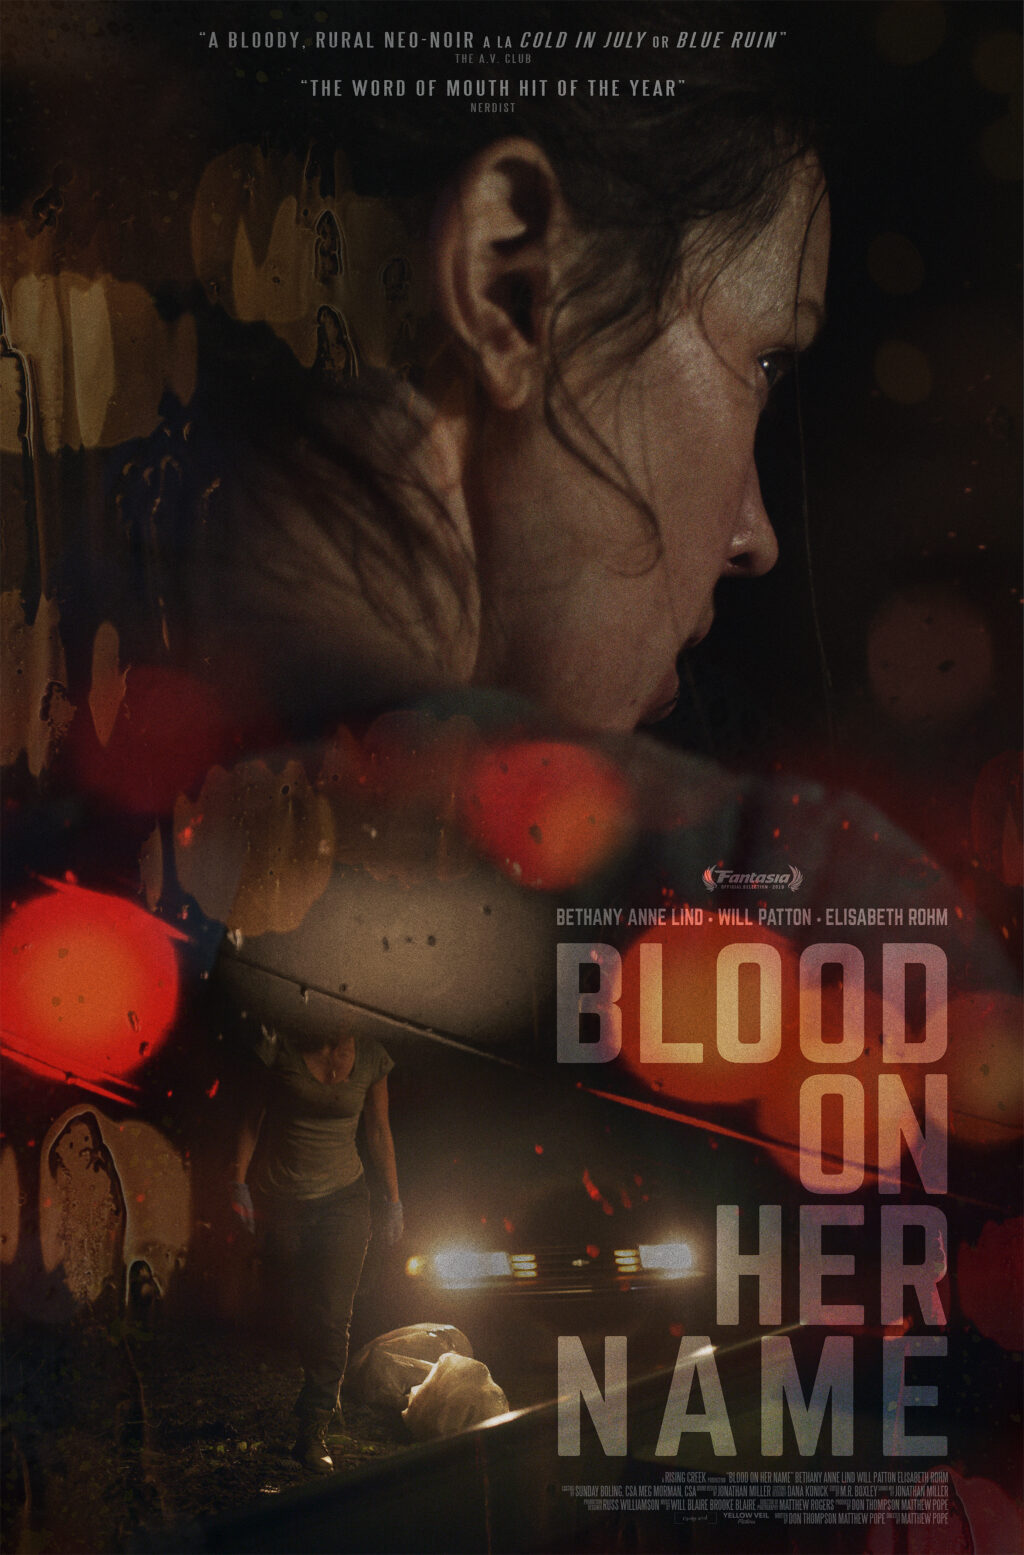 BOHN Poster Large 1024x1555 - BLOOD ON HER NAME Delivers Gripping New Trailer Ahead of 2/28 Release